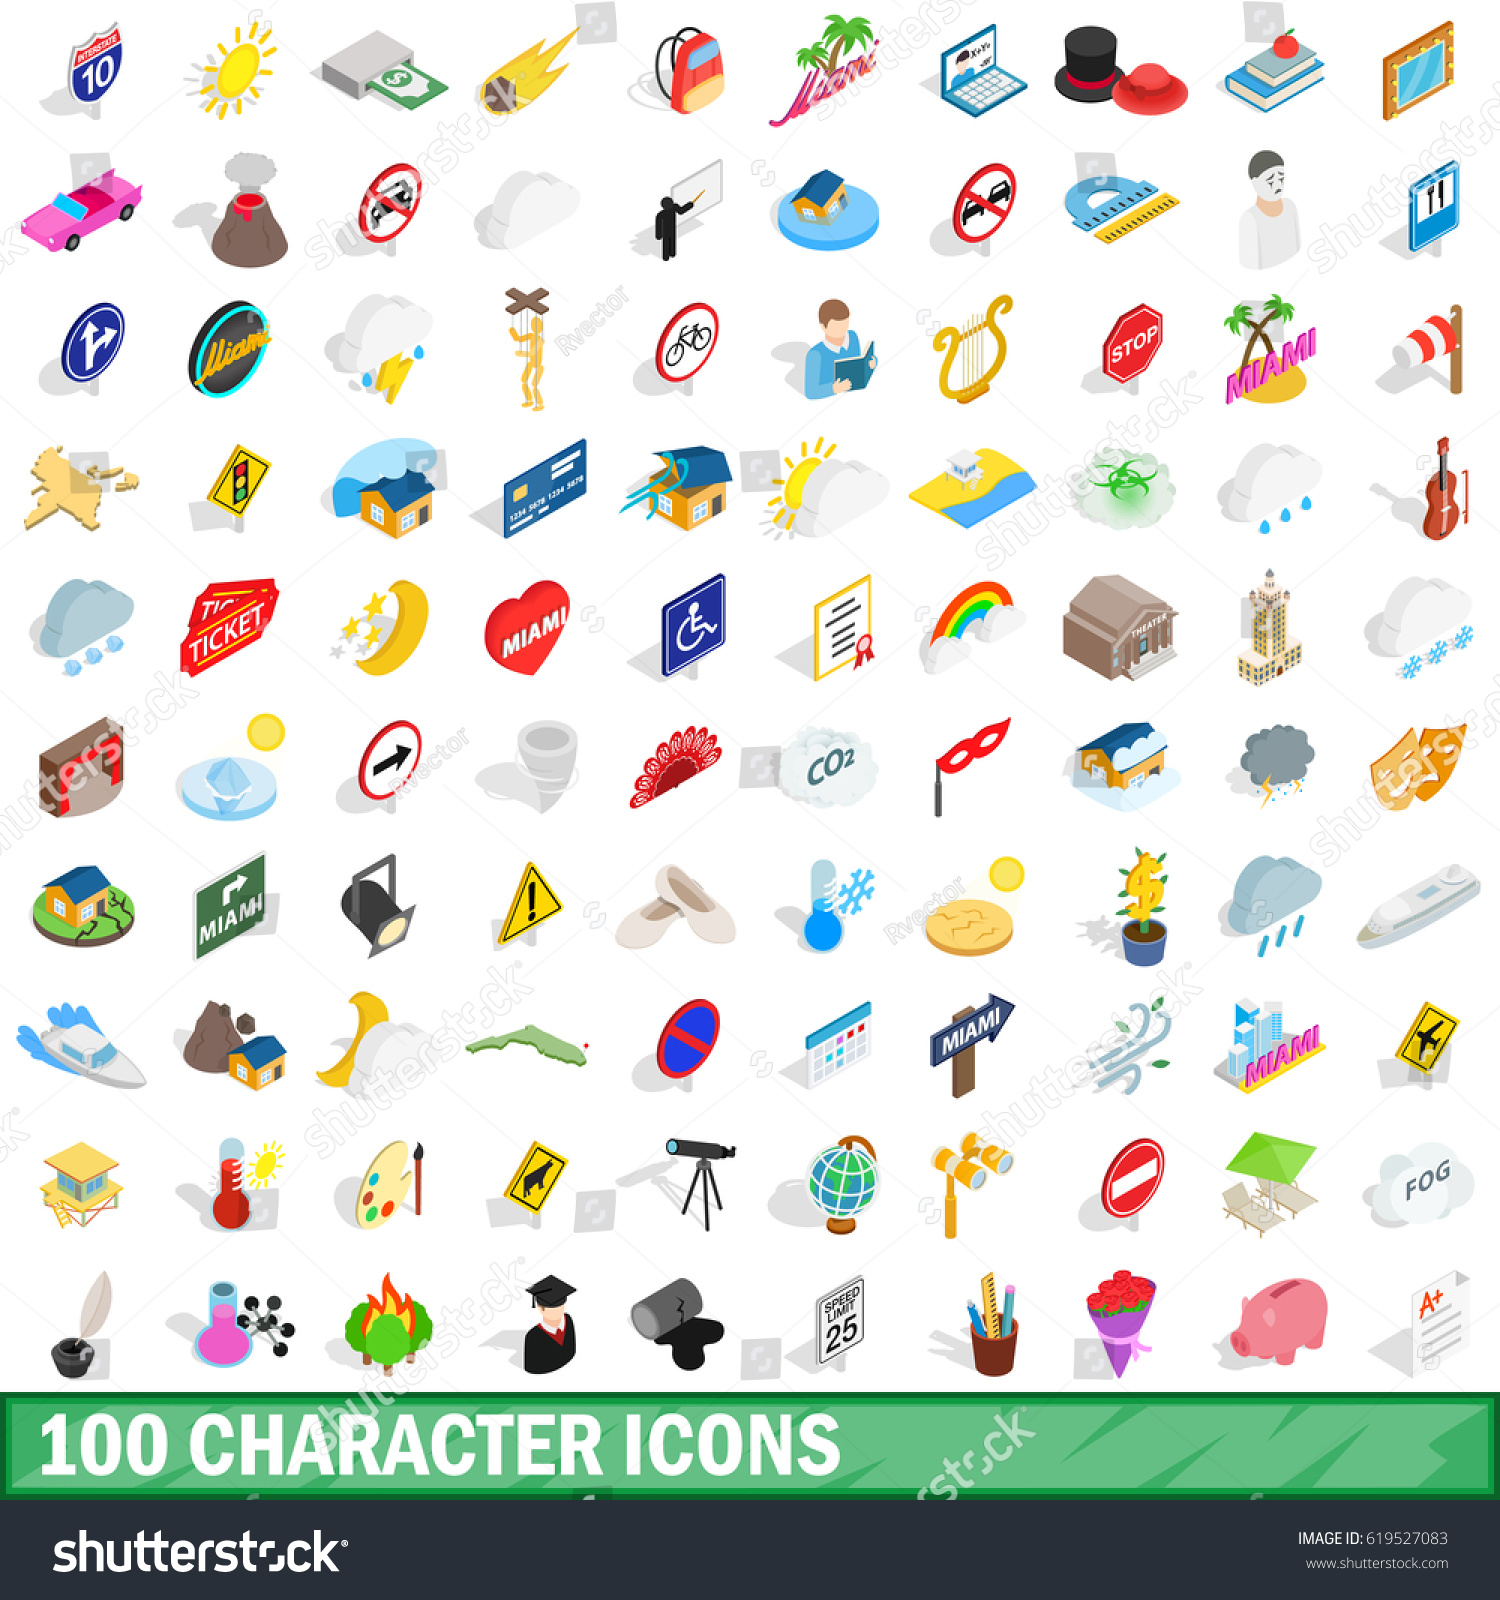 Character Design By 100 Illustrators Pdf : Character icons set isometric d stock vector